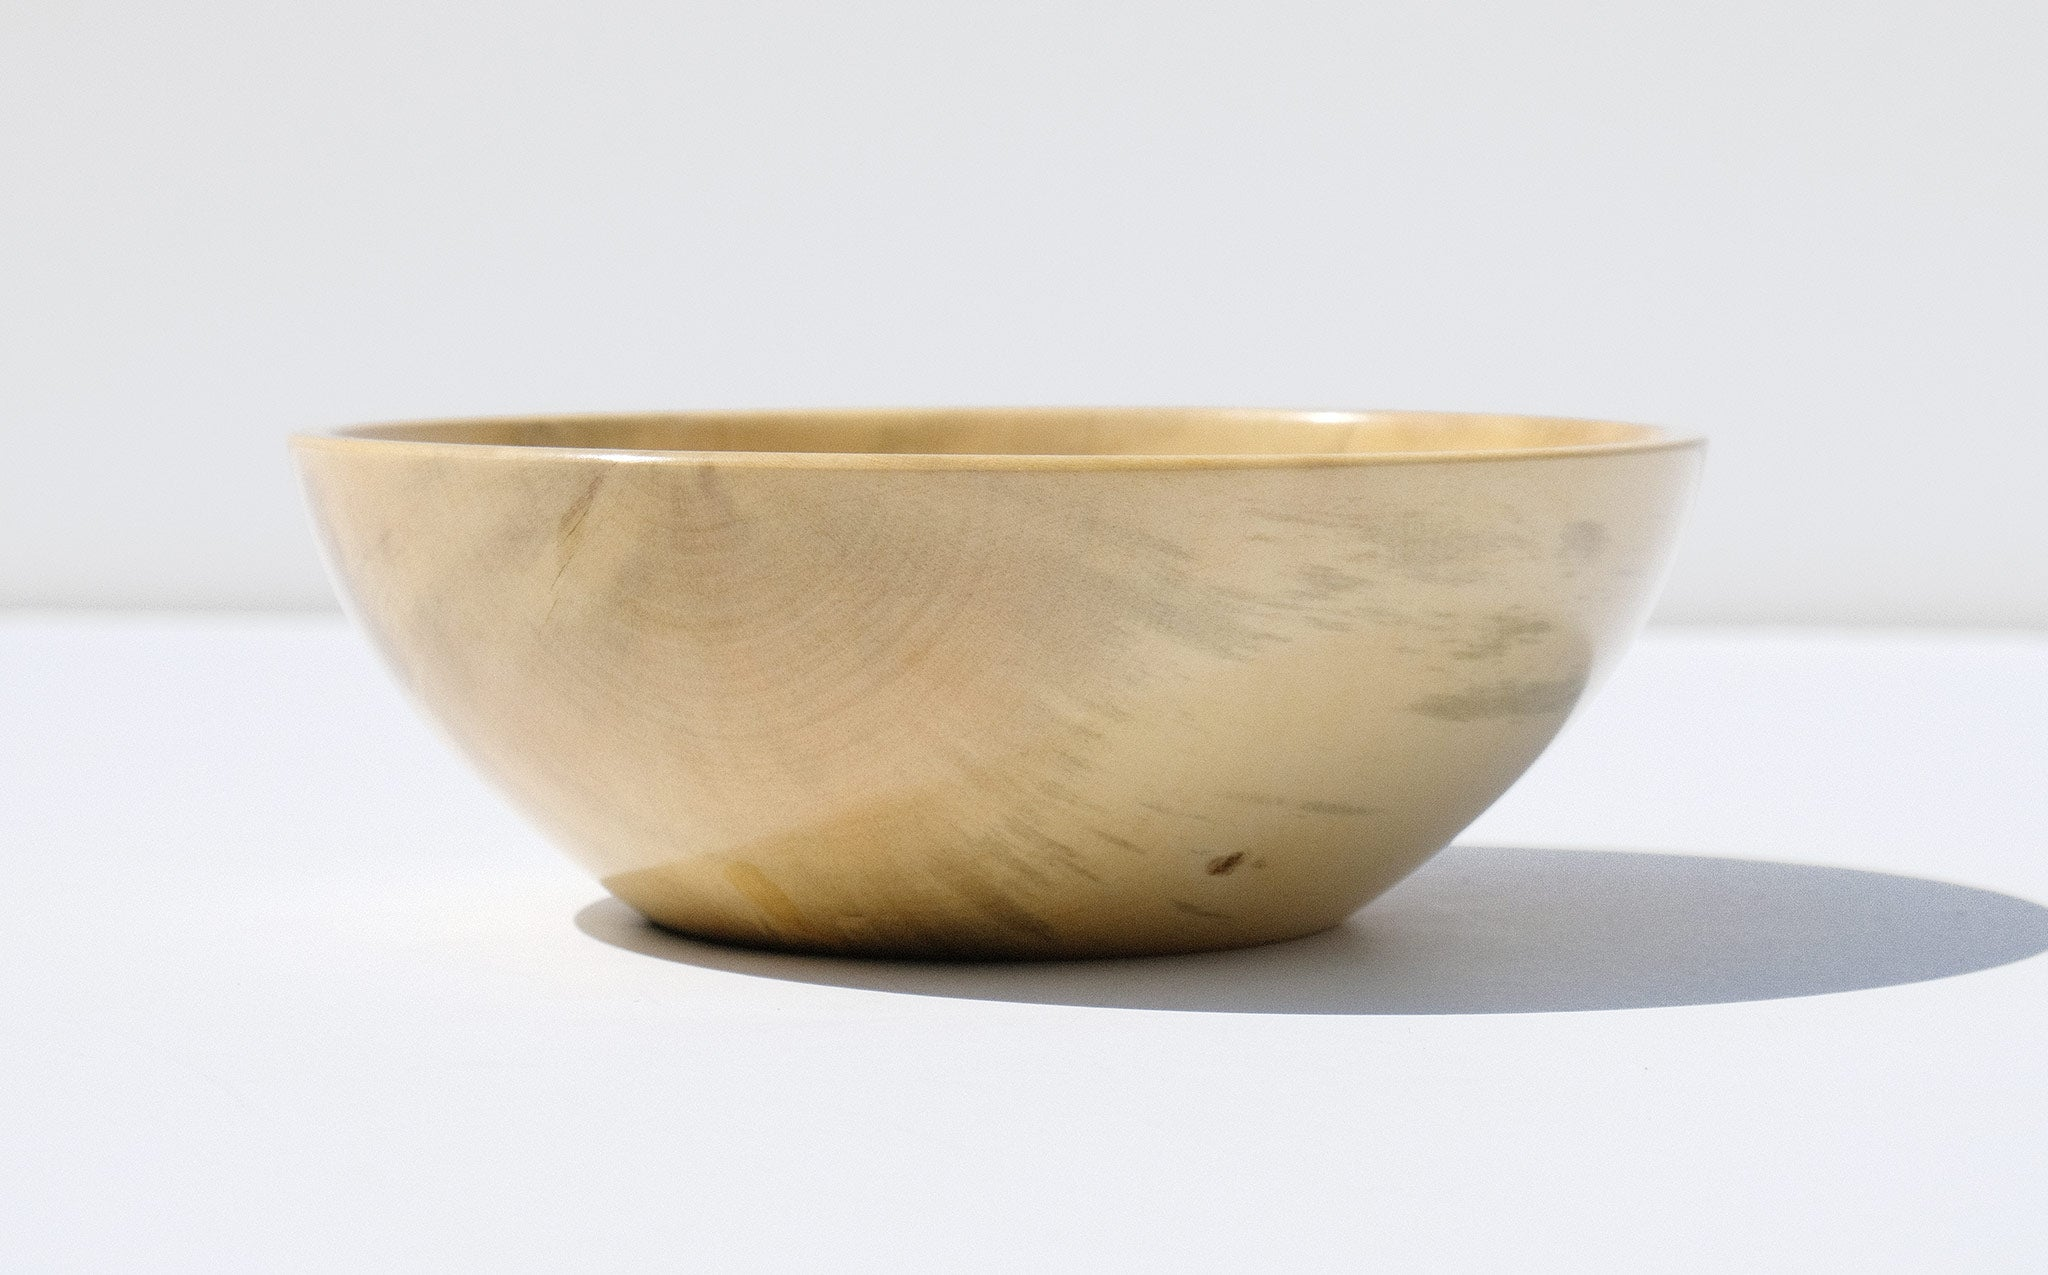 Bruce Perlmutter Hand Lathed Small Round Holly Bowl